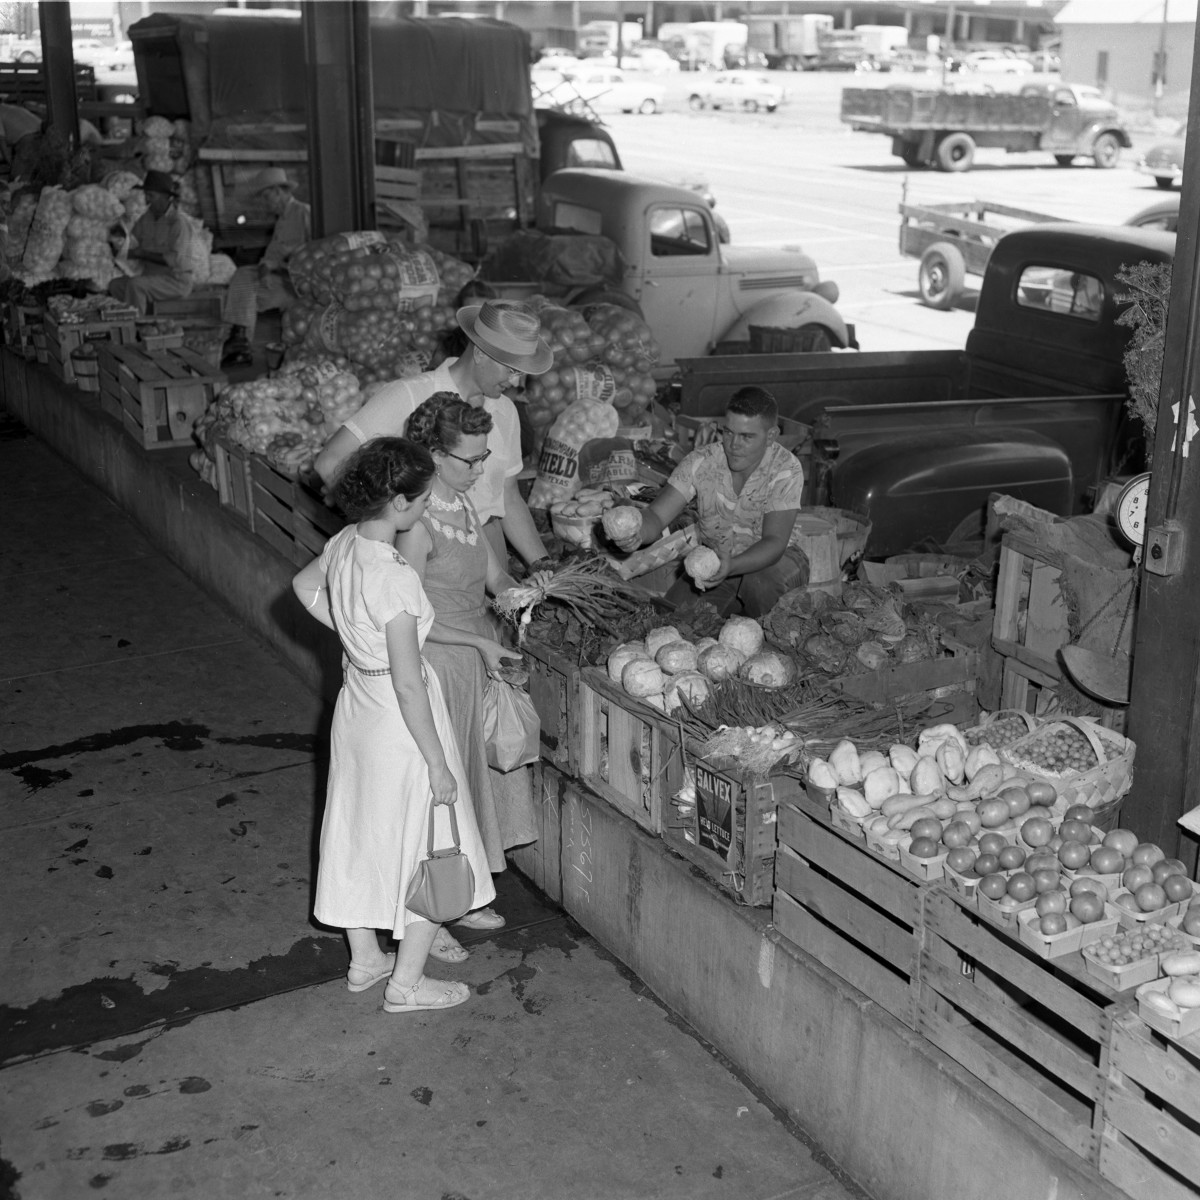 Dallas Farmers Market in late 1940s or early 1950s